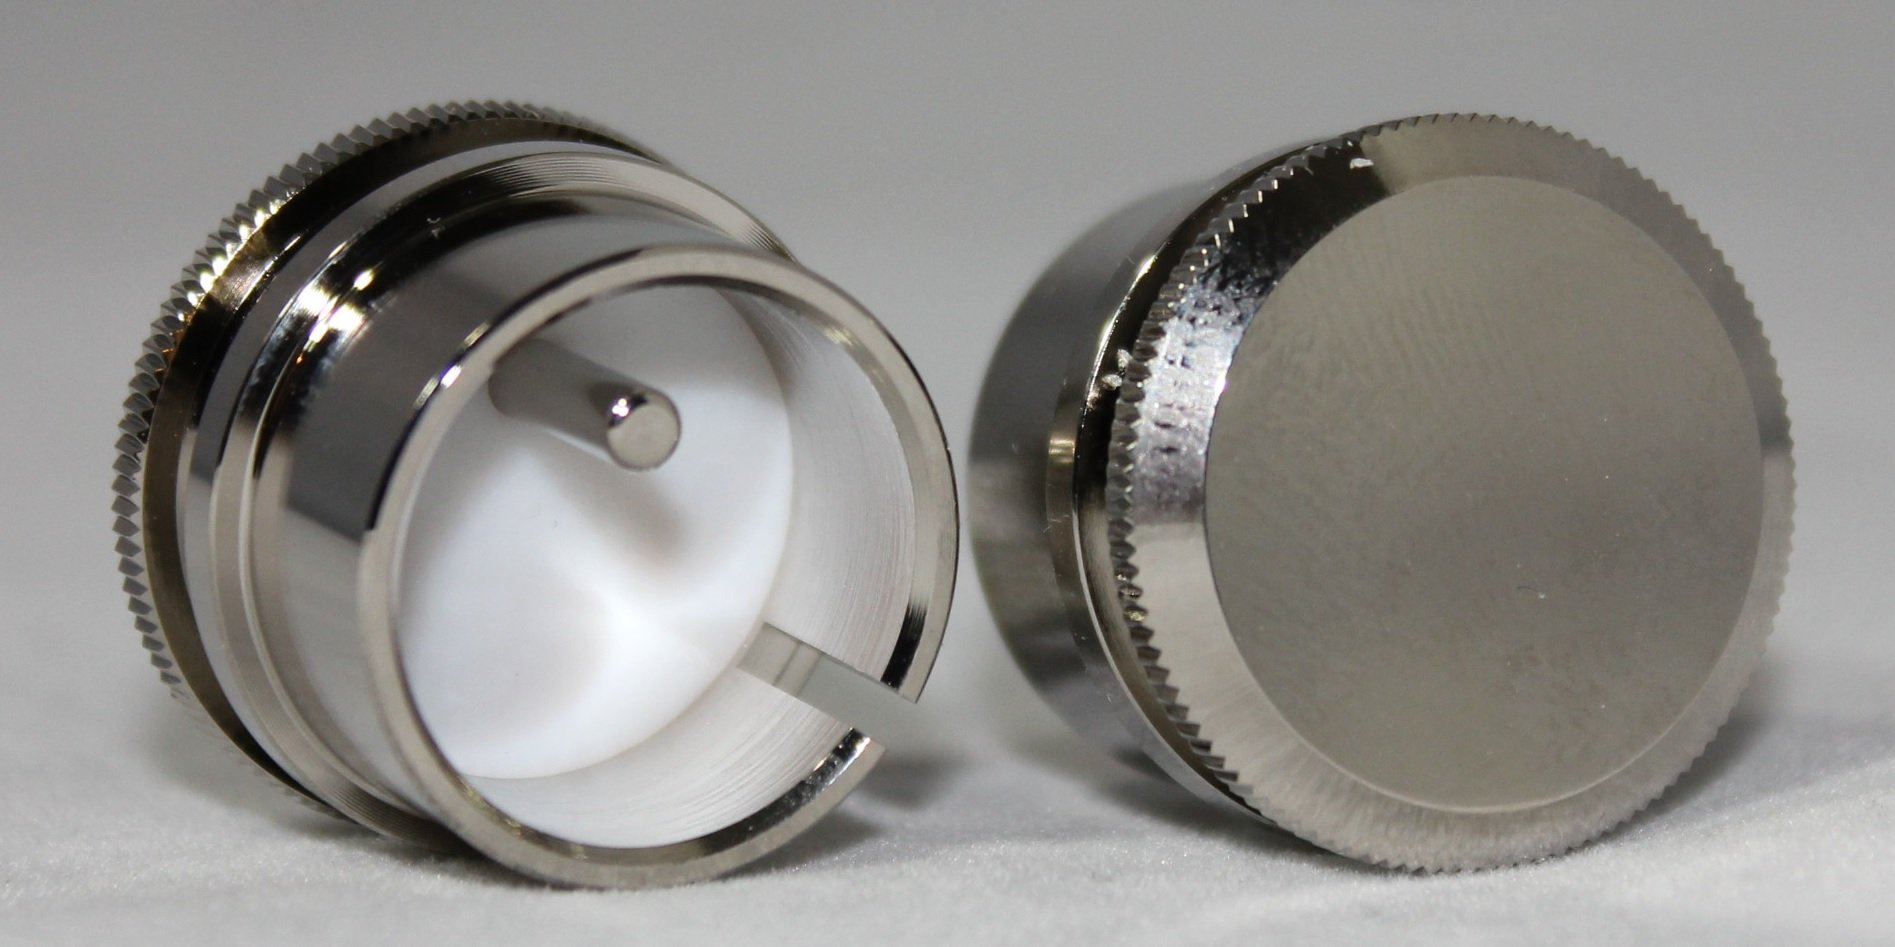 XLR male Noise Reducing Caps - PTFE (Teflon) Insulation - Nickel Plated - Pack of 2